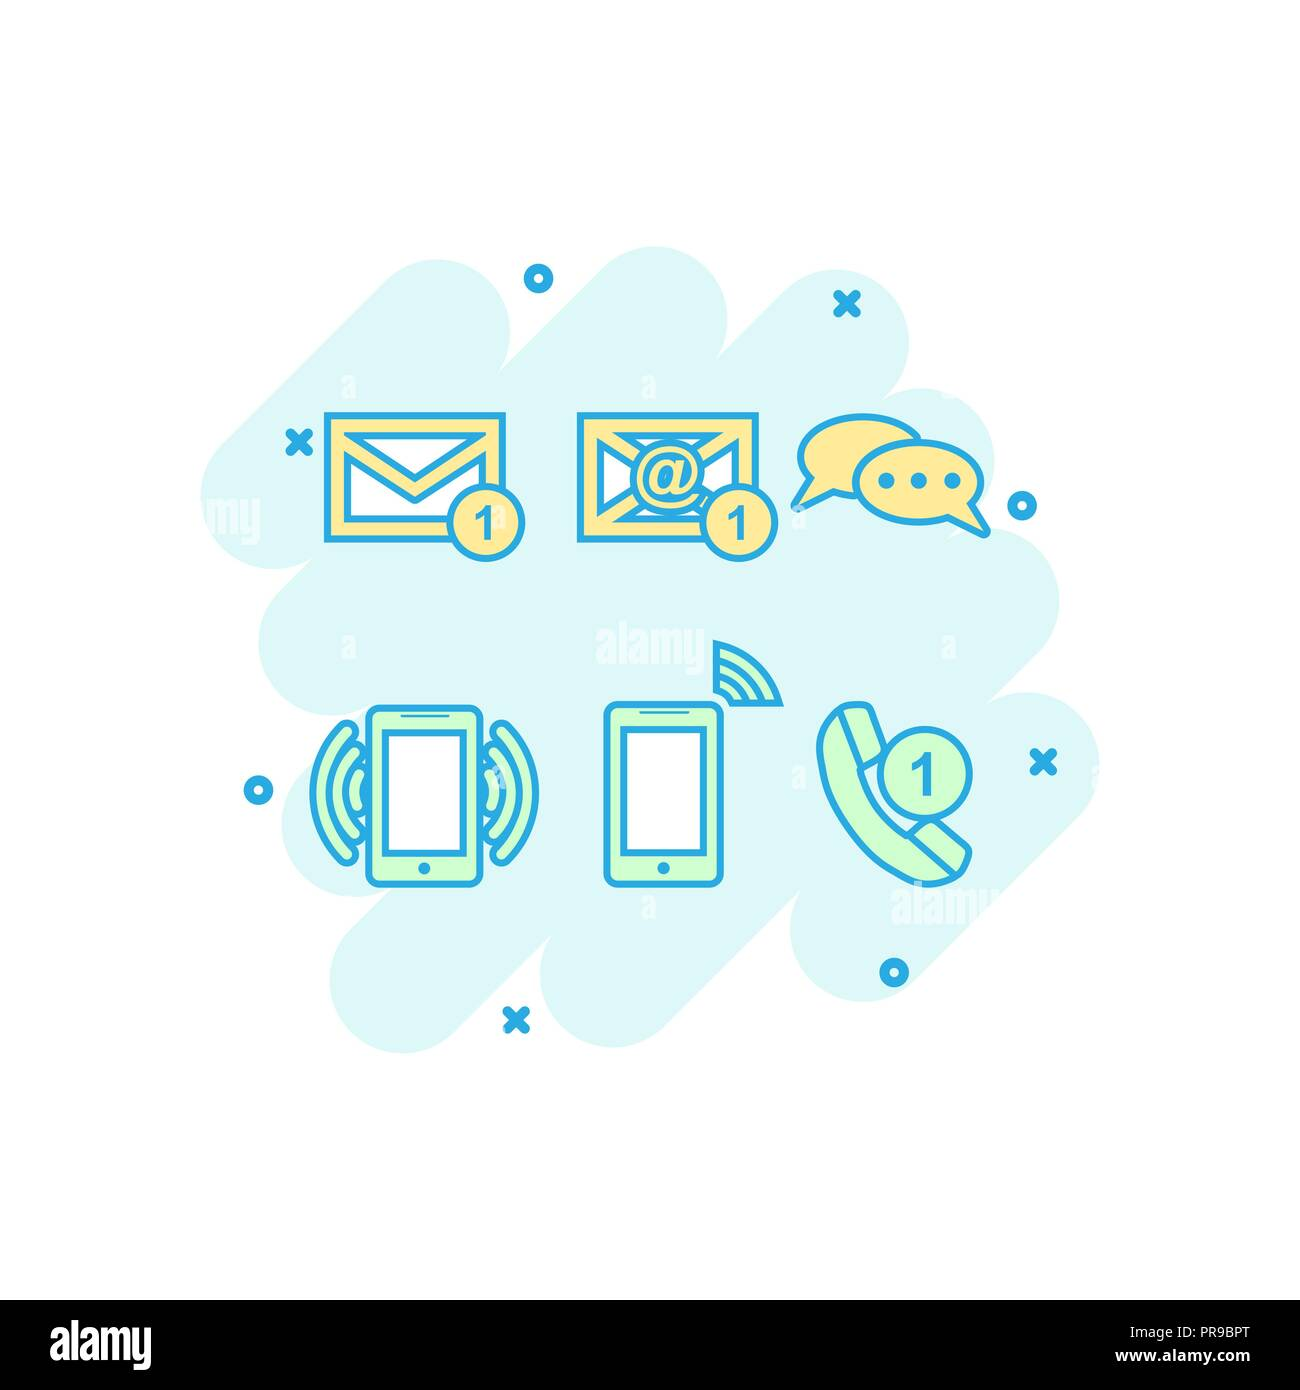 Cartoon colored contact buttons icon in comic style. Email, envelope, phone, mobile illustration pictogram. Communication sign splash business concept - Stock Image